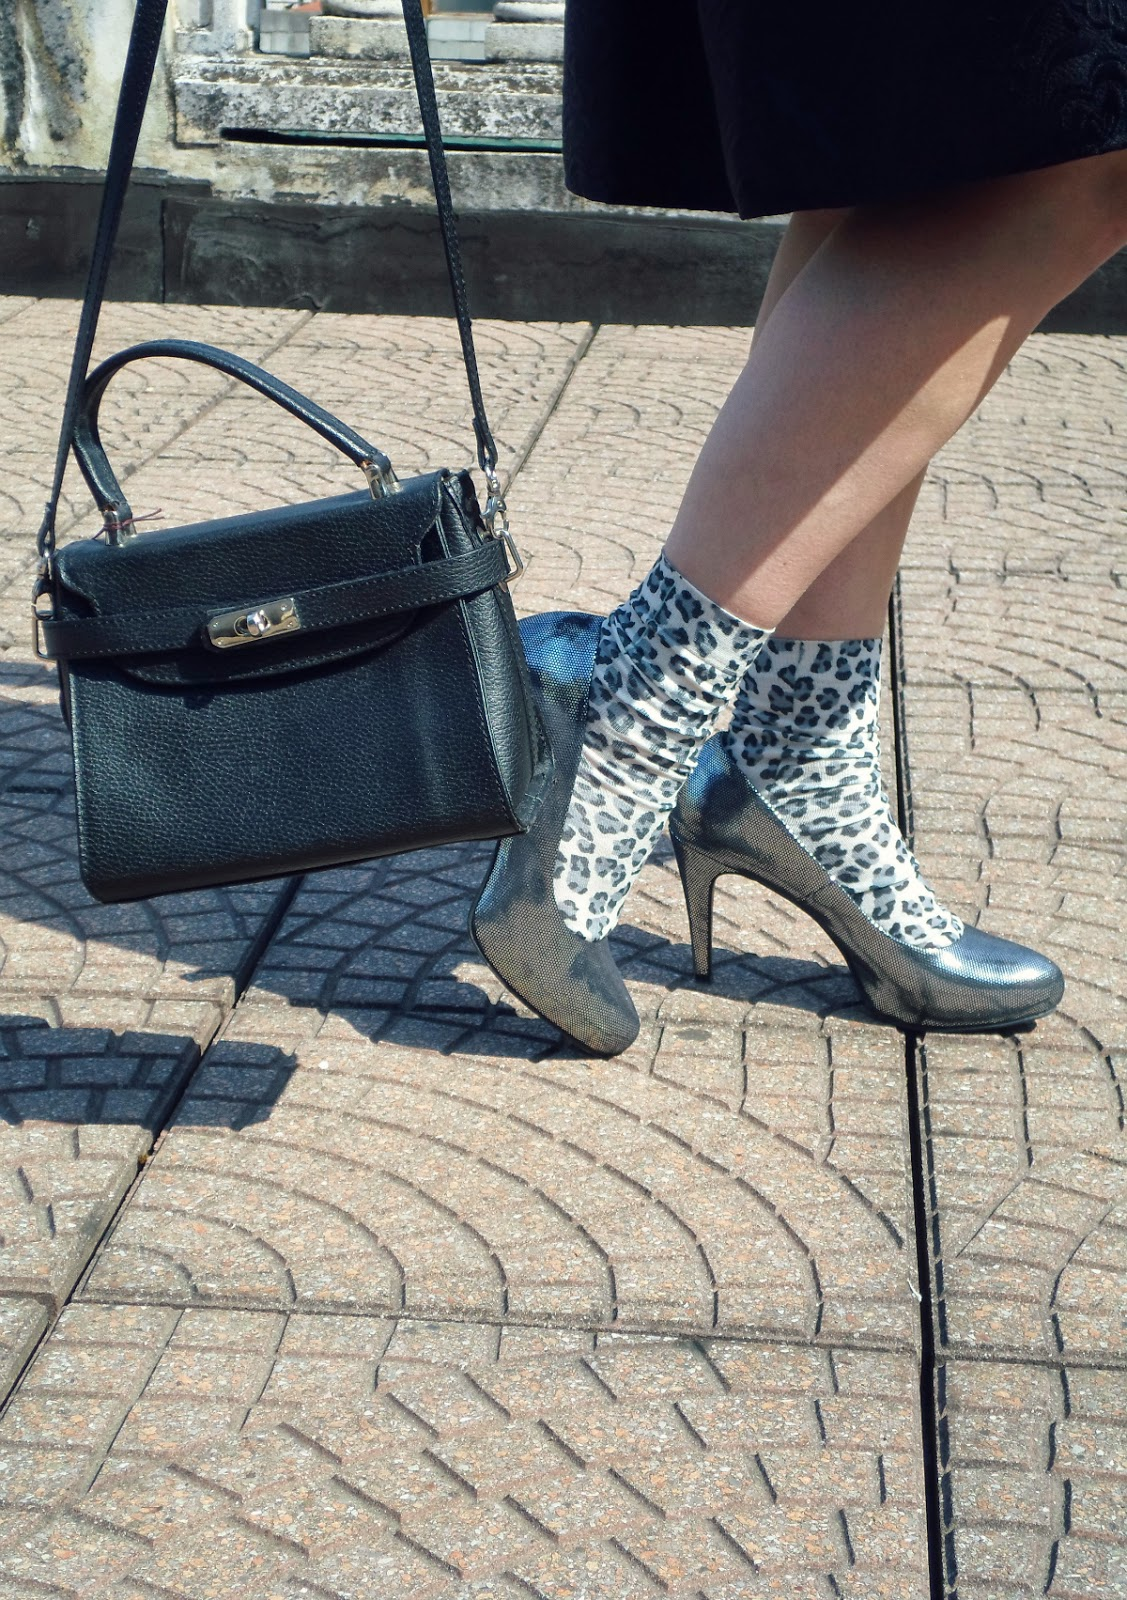 Black Bag, Silver Heels & Leopard Socks    When Black Meets Silver - Spring Midi Skirt Love   Funky Jungle, fashion and personal style blog